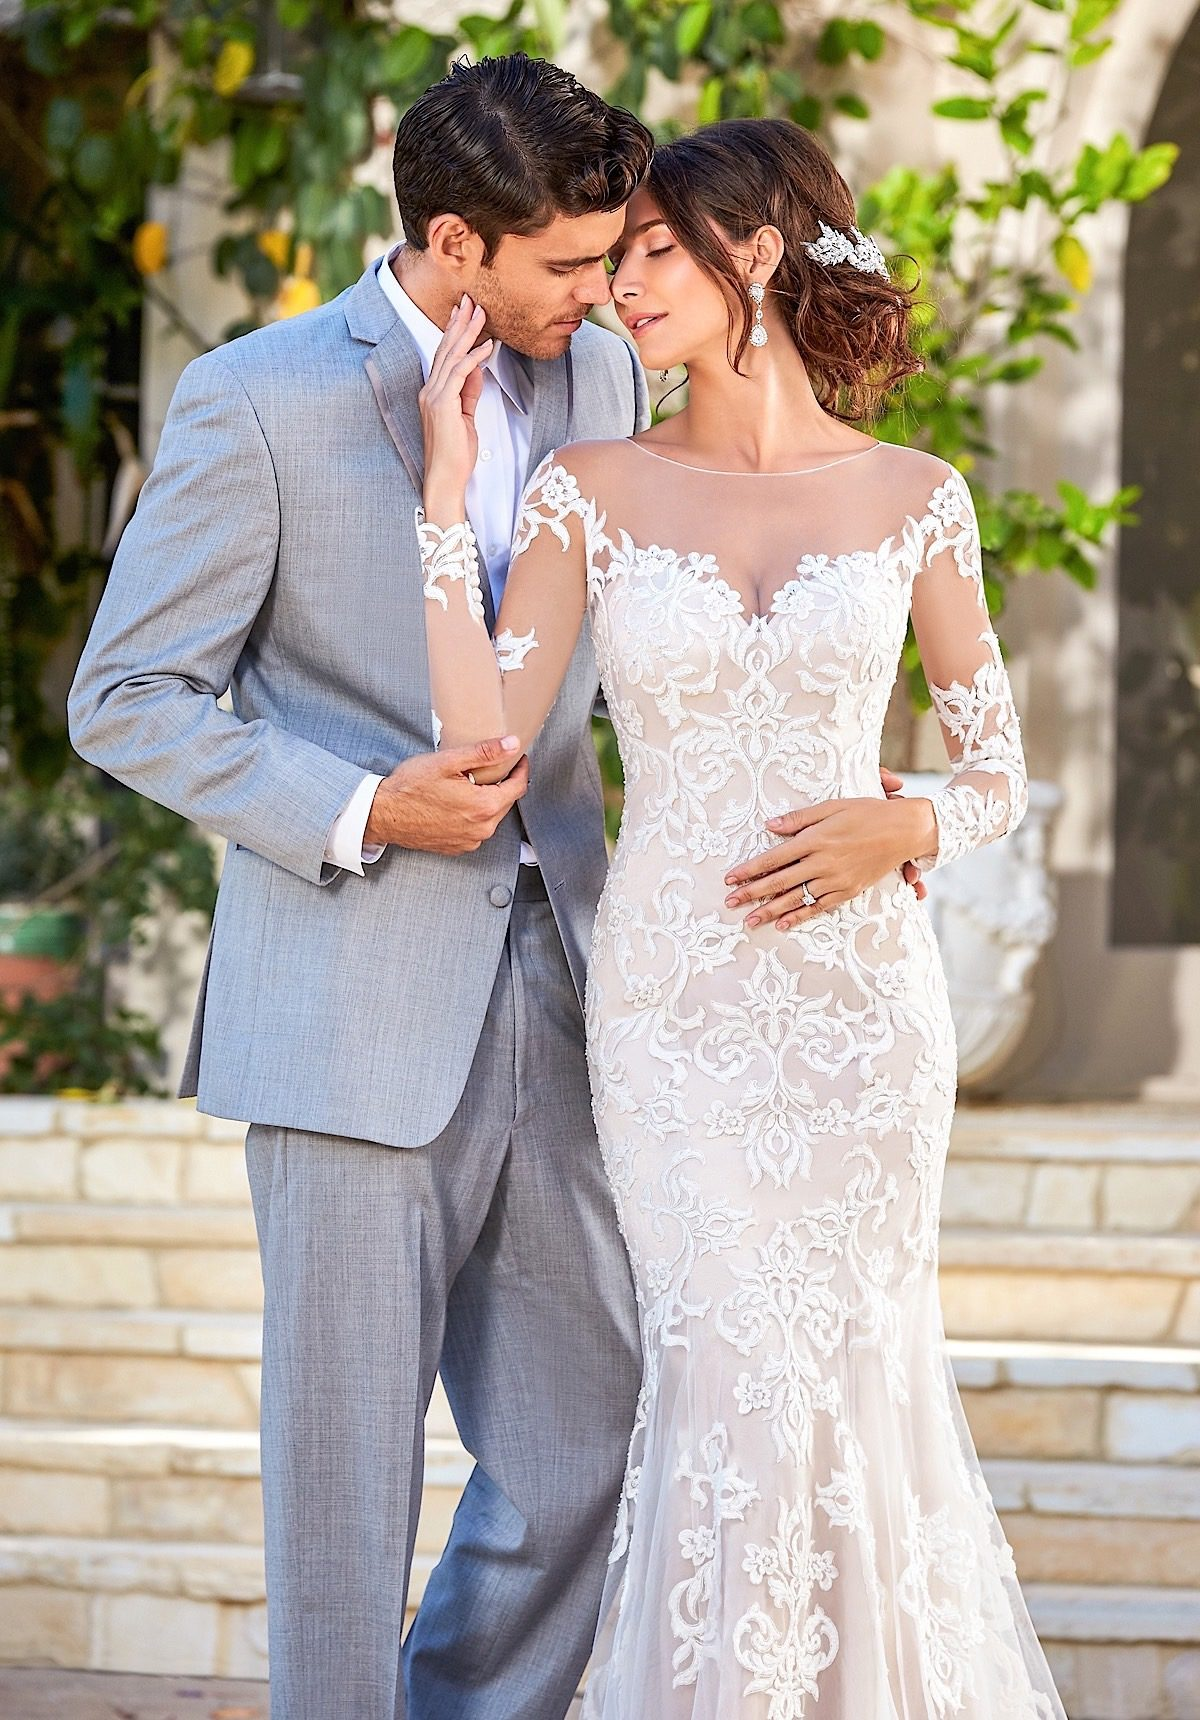 Designer Wedding Dresses Brisbane